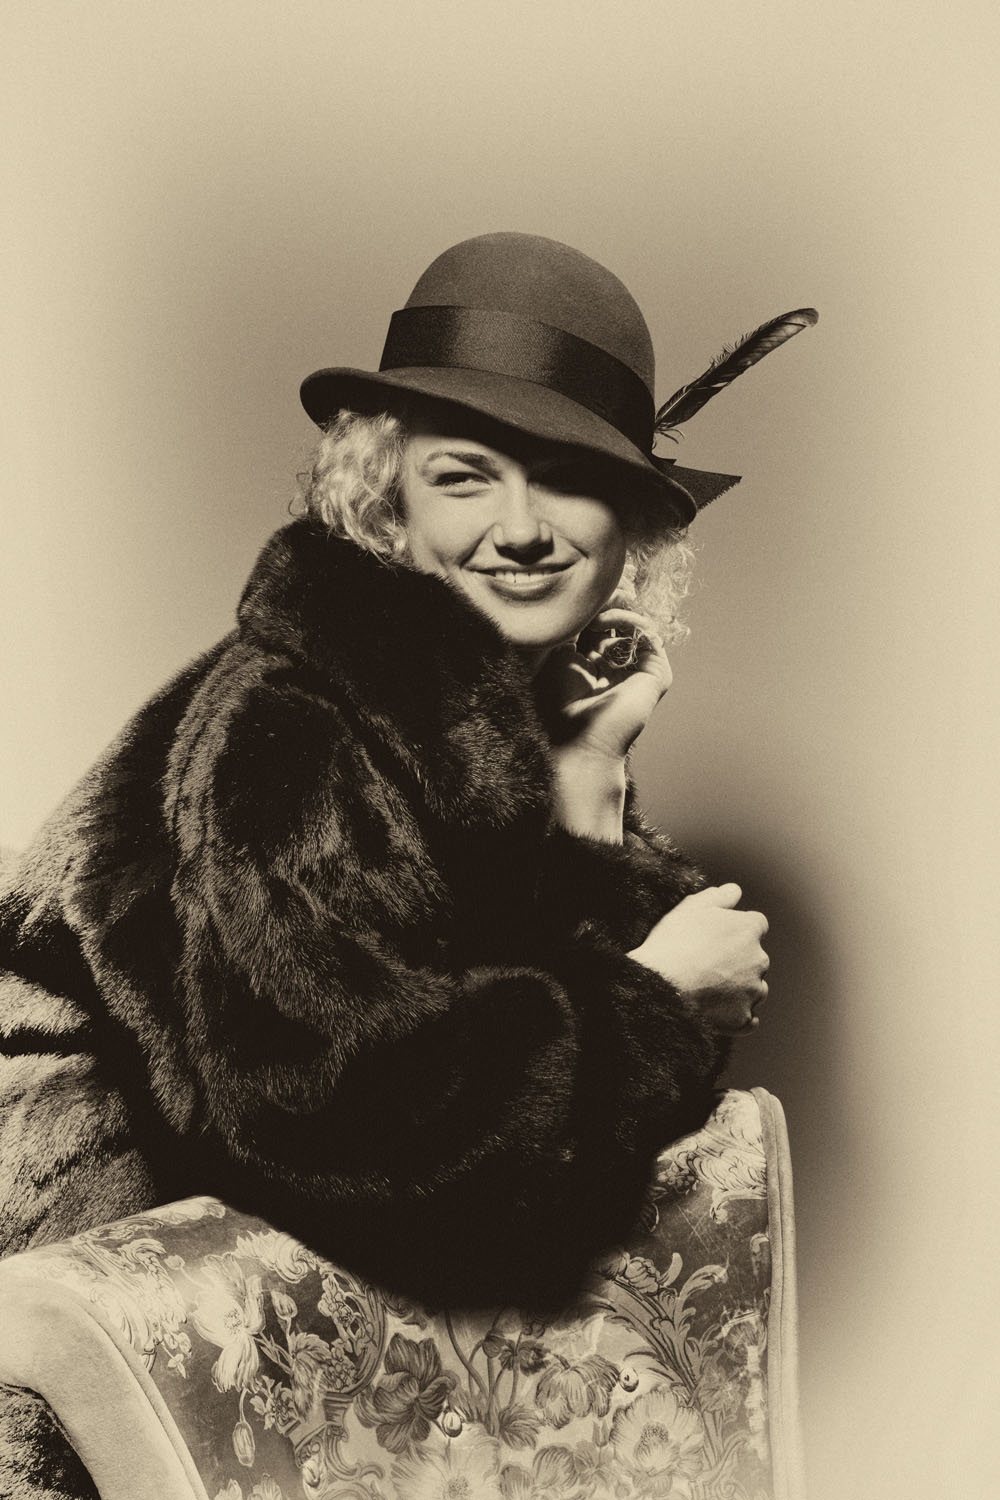 Chilko 1930s fur hat by chair smile_BW36.jpg